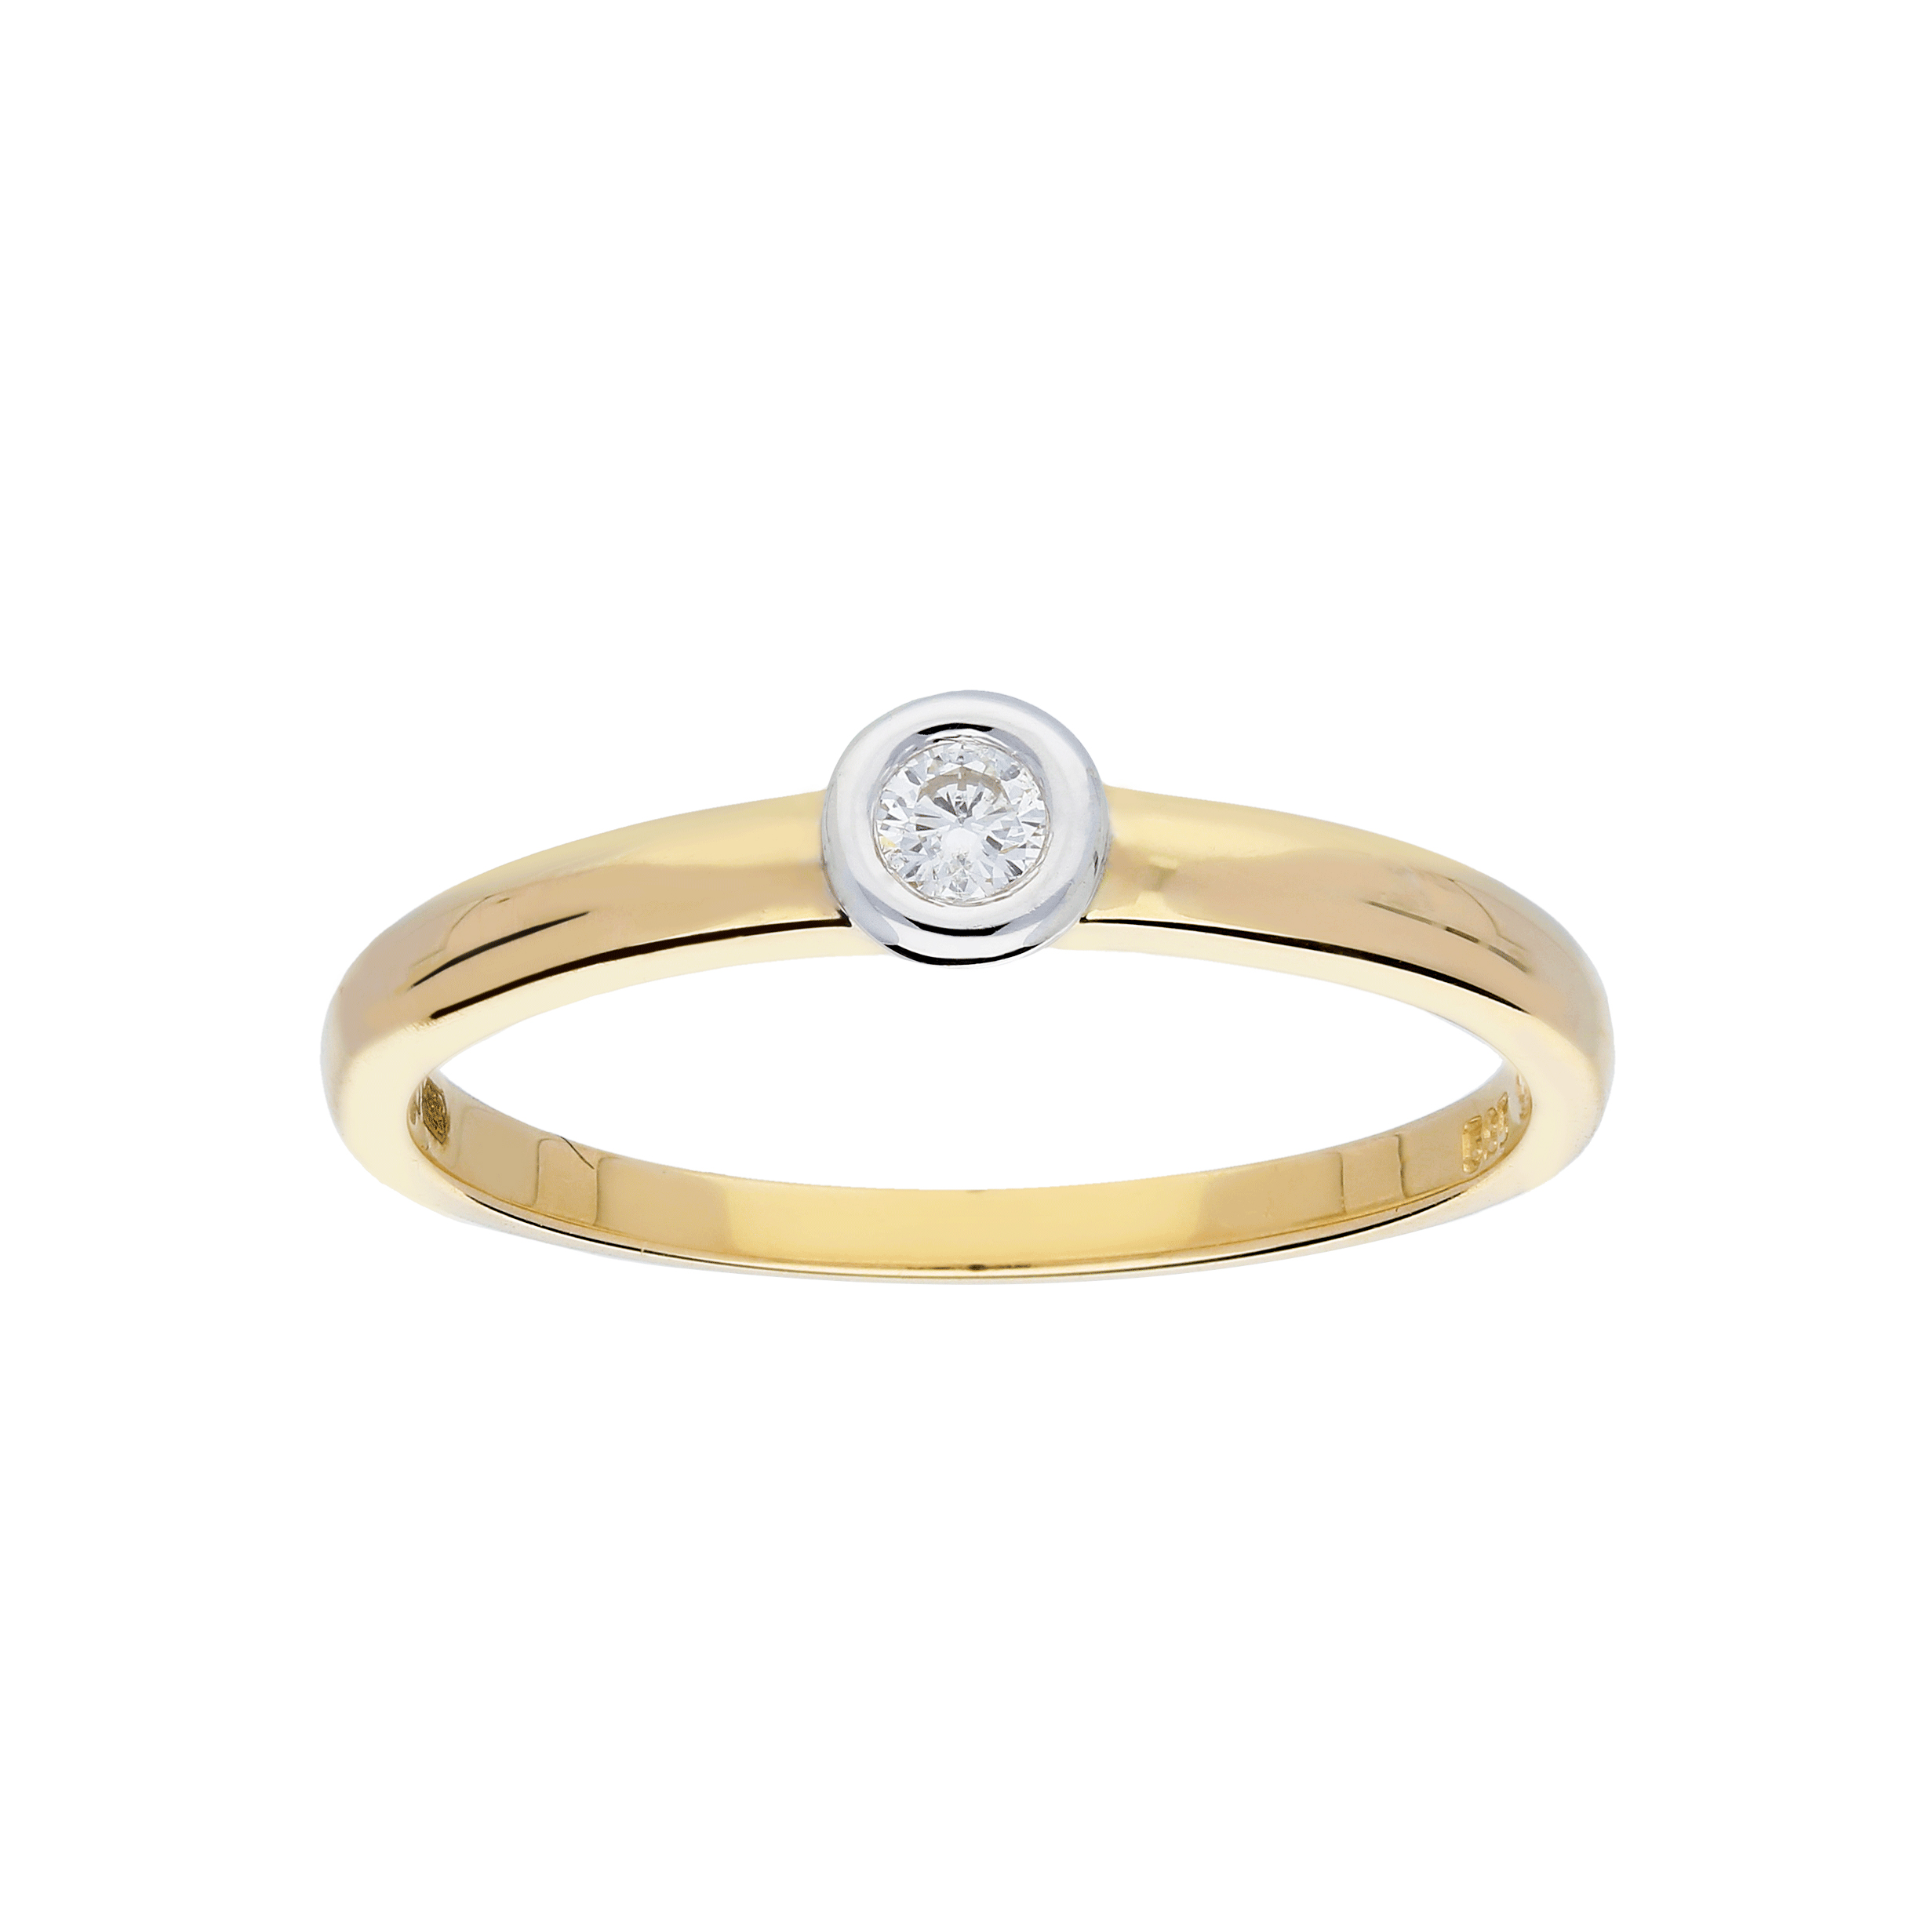 Glow Gouden Ring Bicolor Mat Glanzend Diamant 1 0.05ct G si 214.5308.58